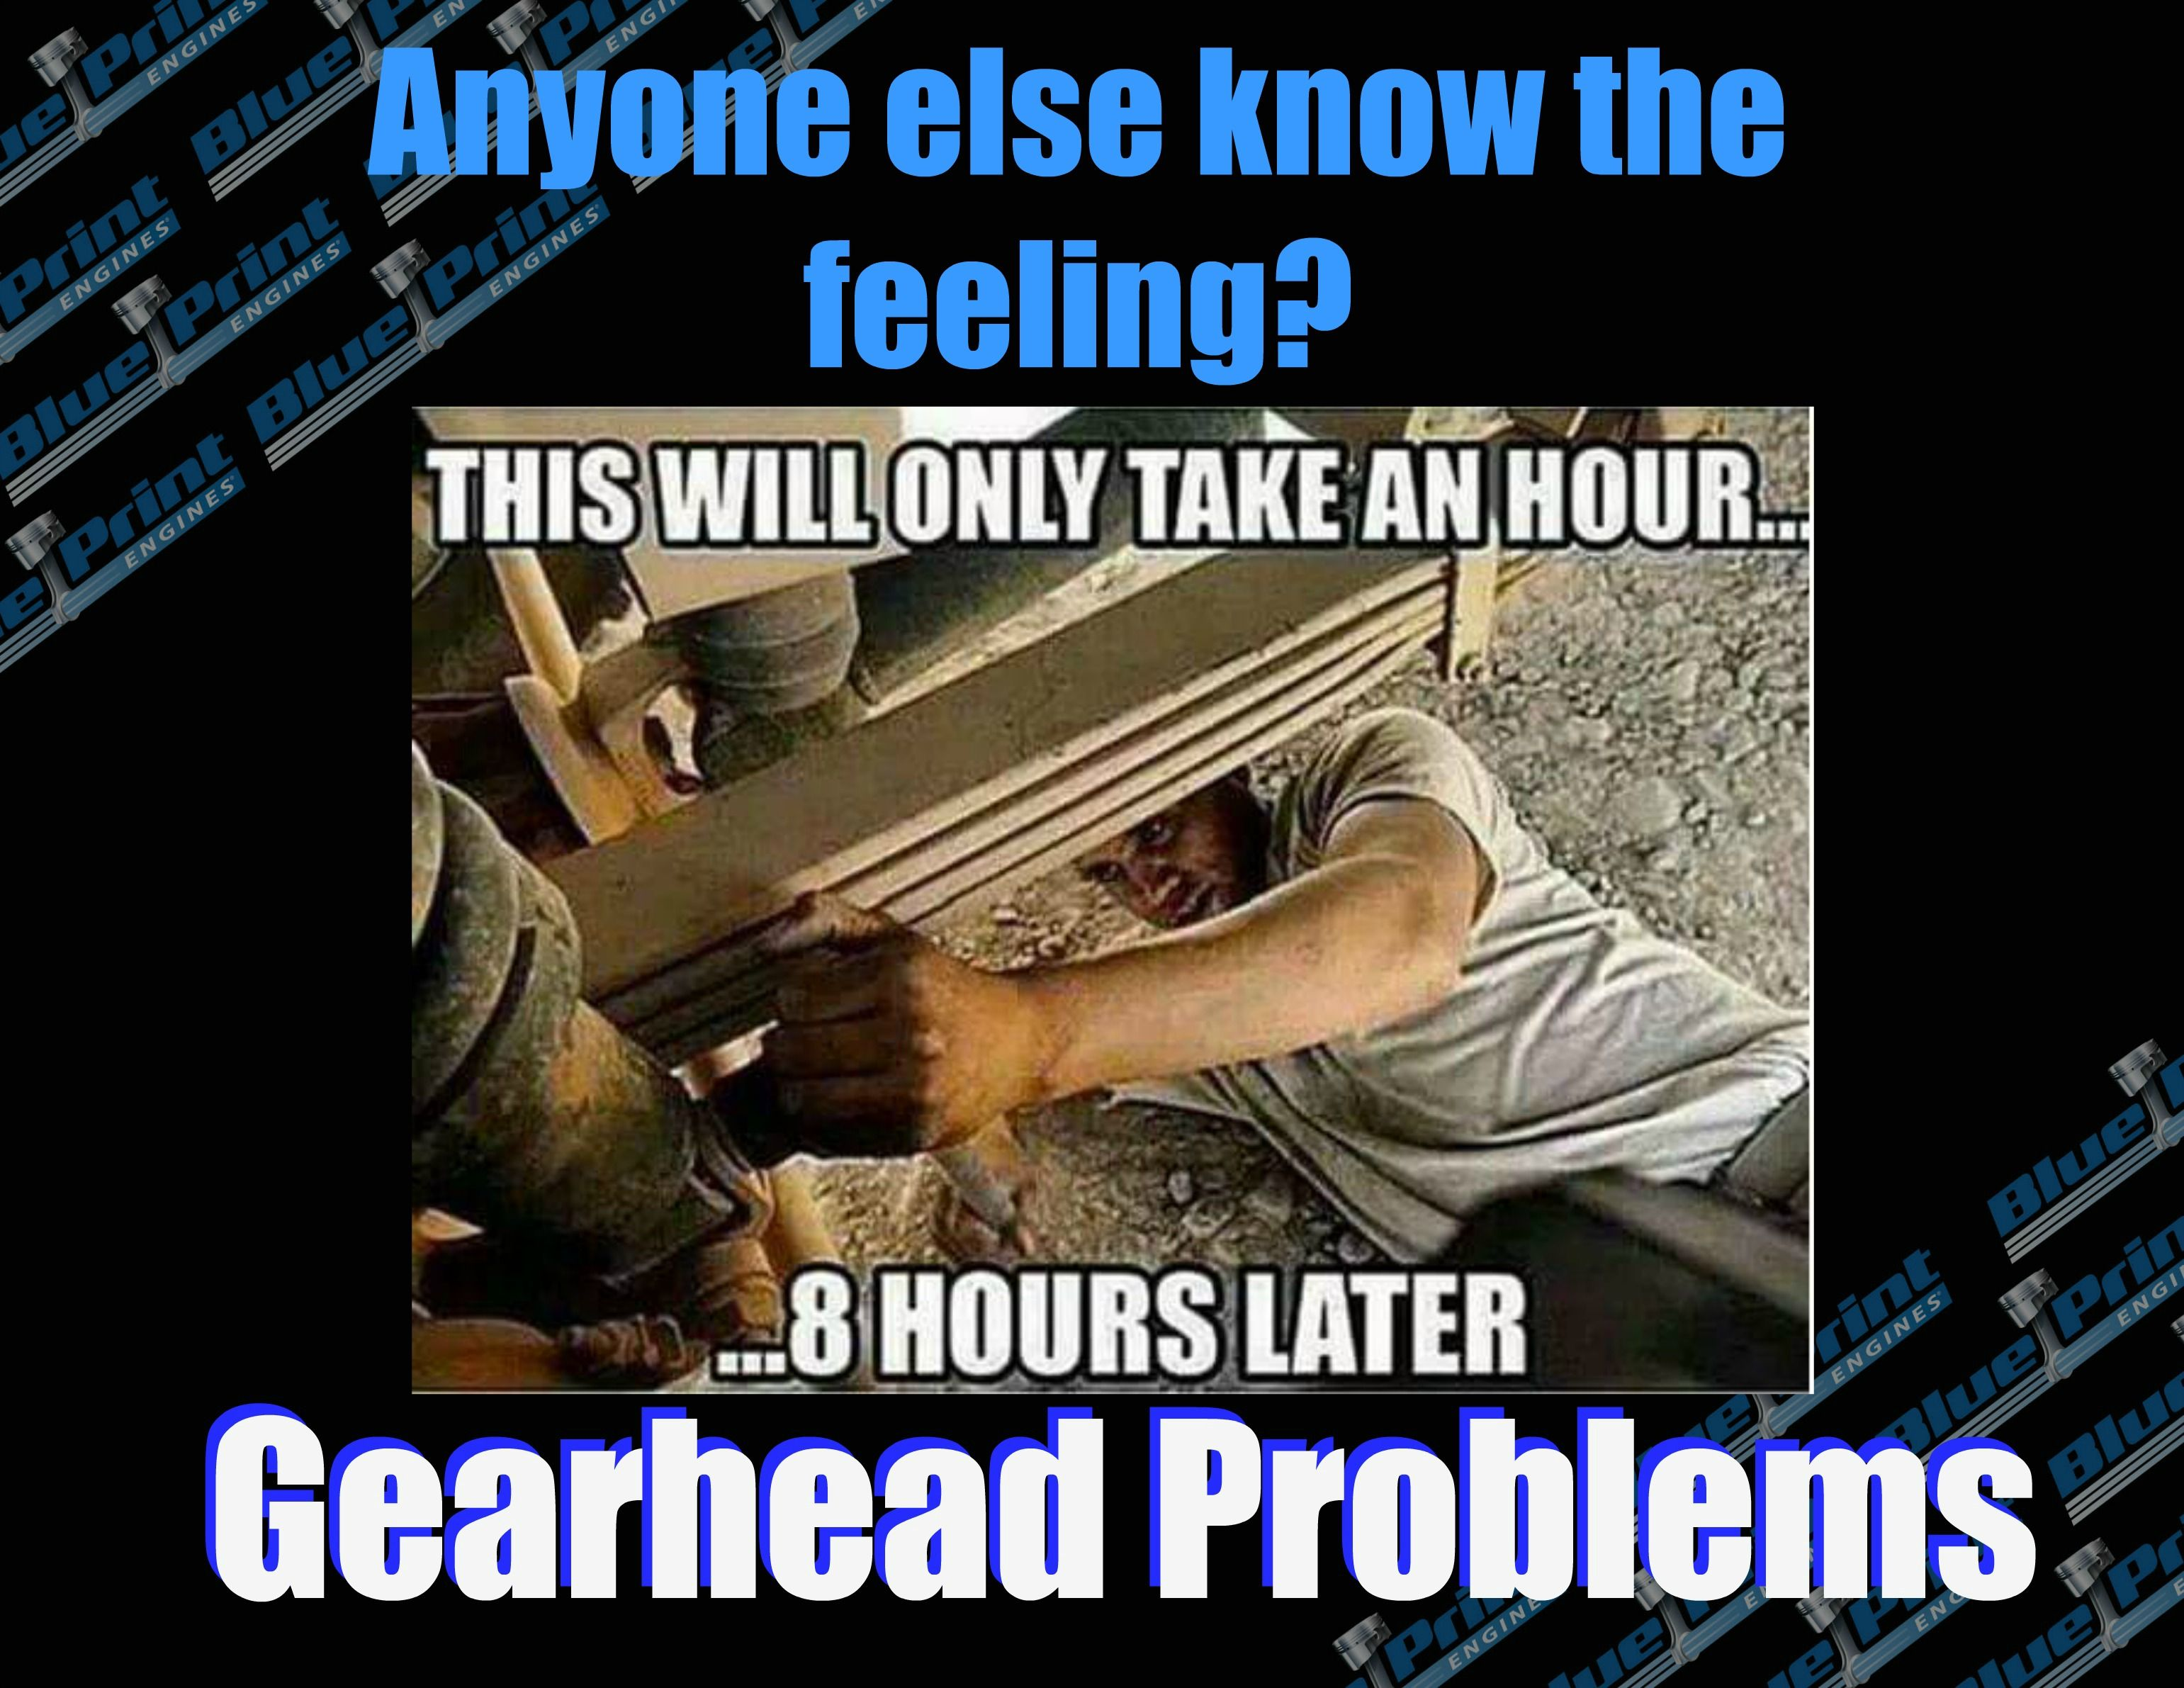 Yep we all know the feeling those day projects turn into for more information about our full line of engines cylinder heads and parts offered call blueprint engines to speak malvernweather Images